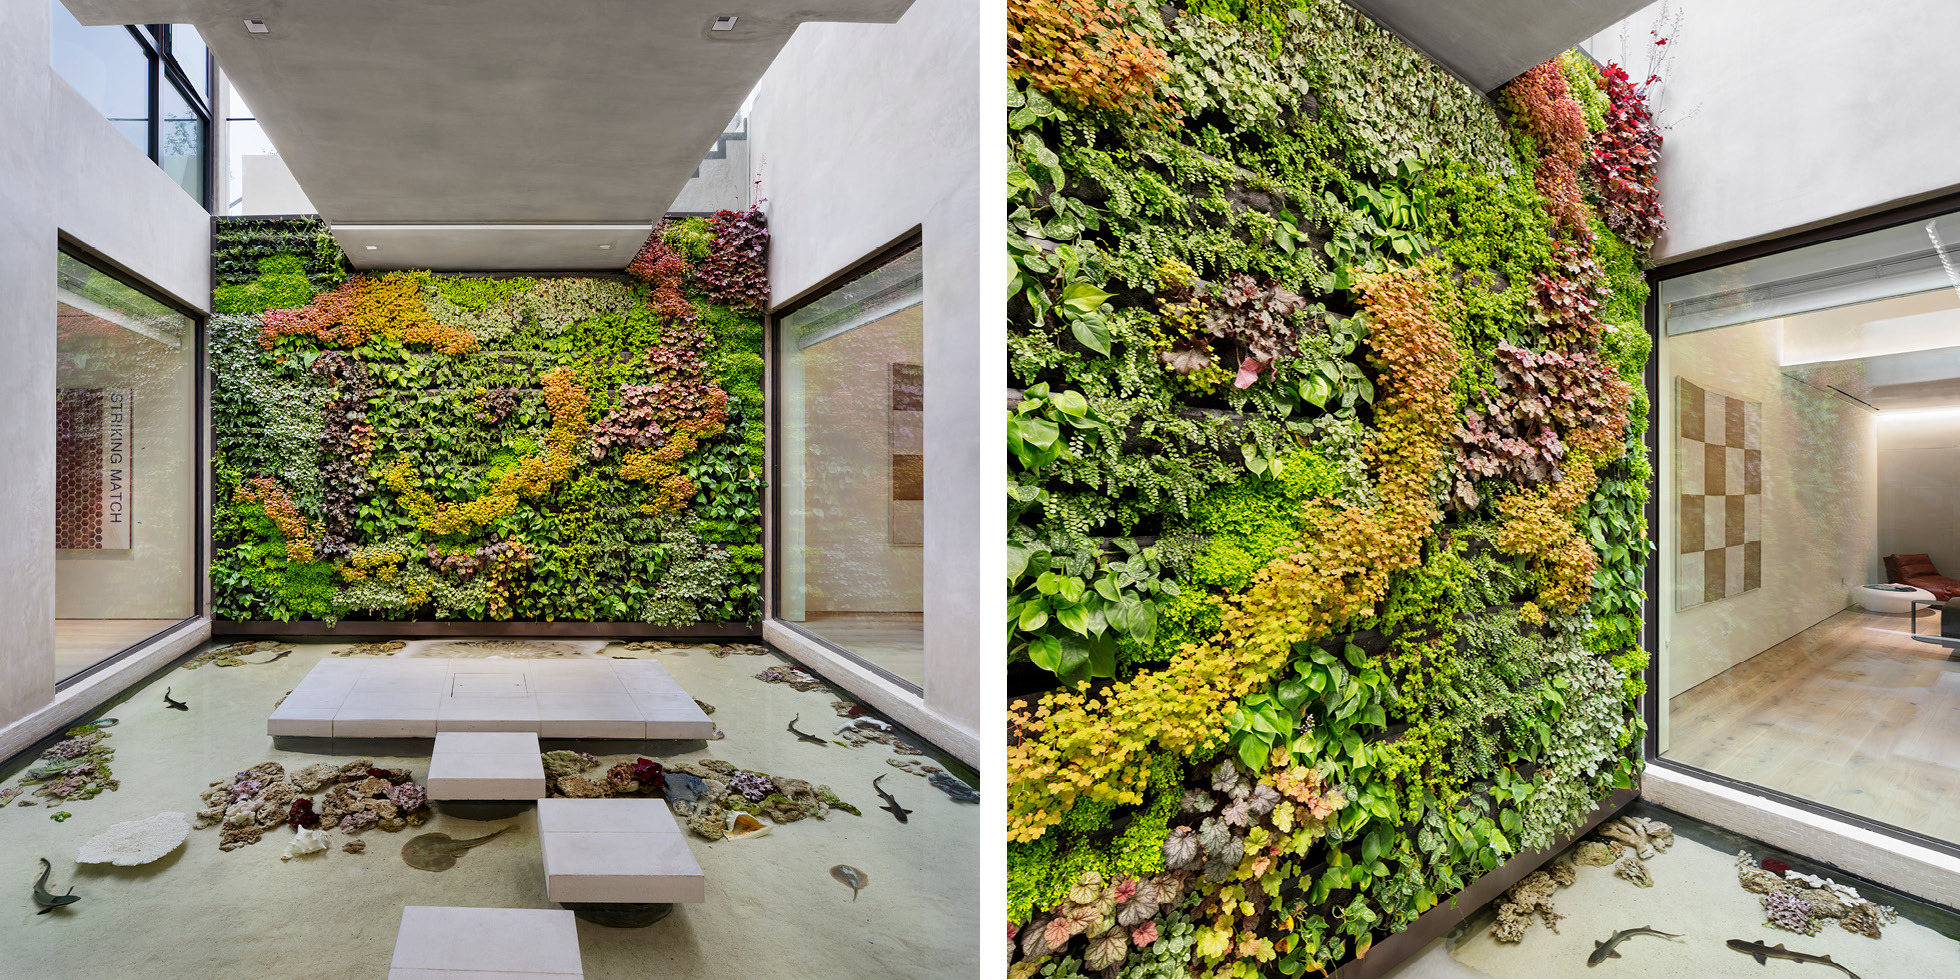 Beverly Hills Residence Living Wall by Habitat Horticulture - View 1